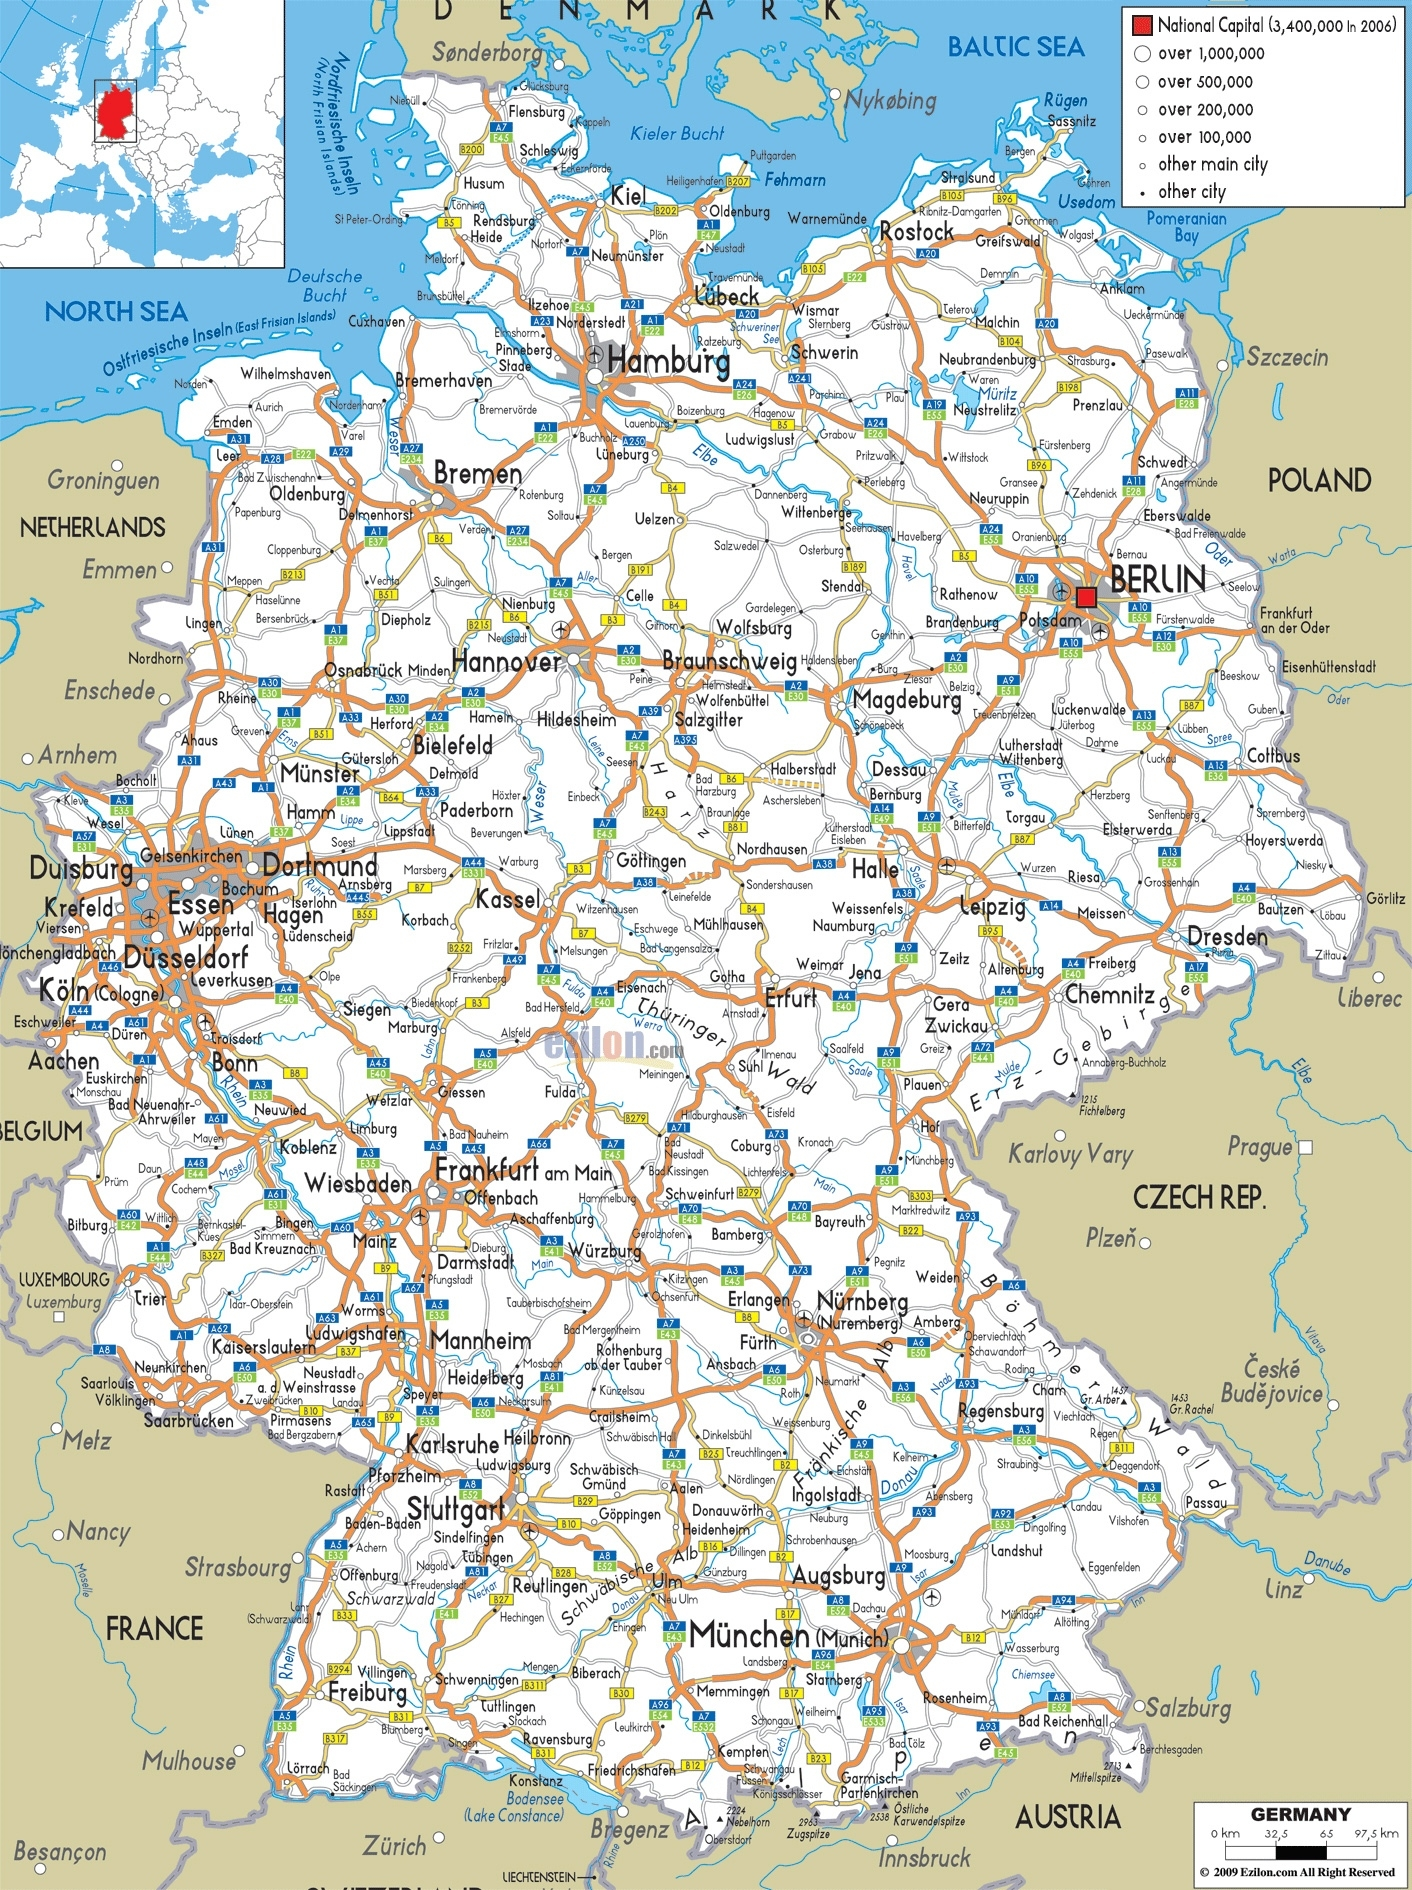 Google Map Of Germany With Cities And Towns And Travel Information regarding Germany Map Cities Towns